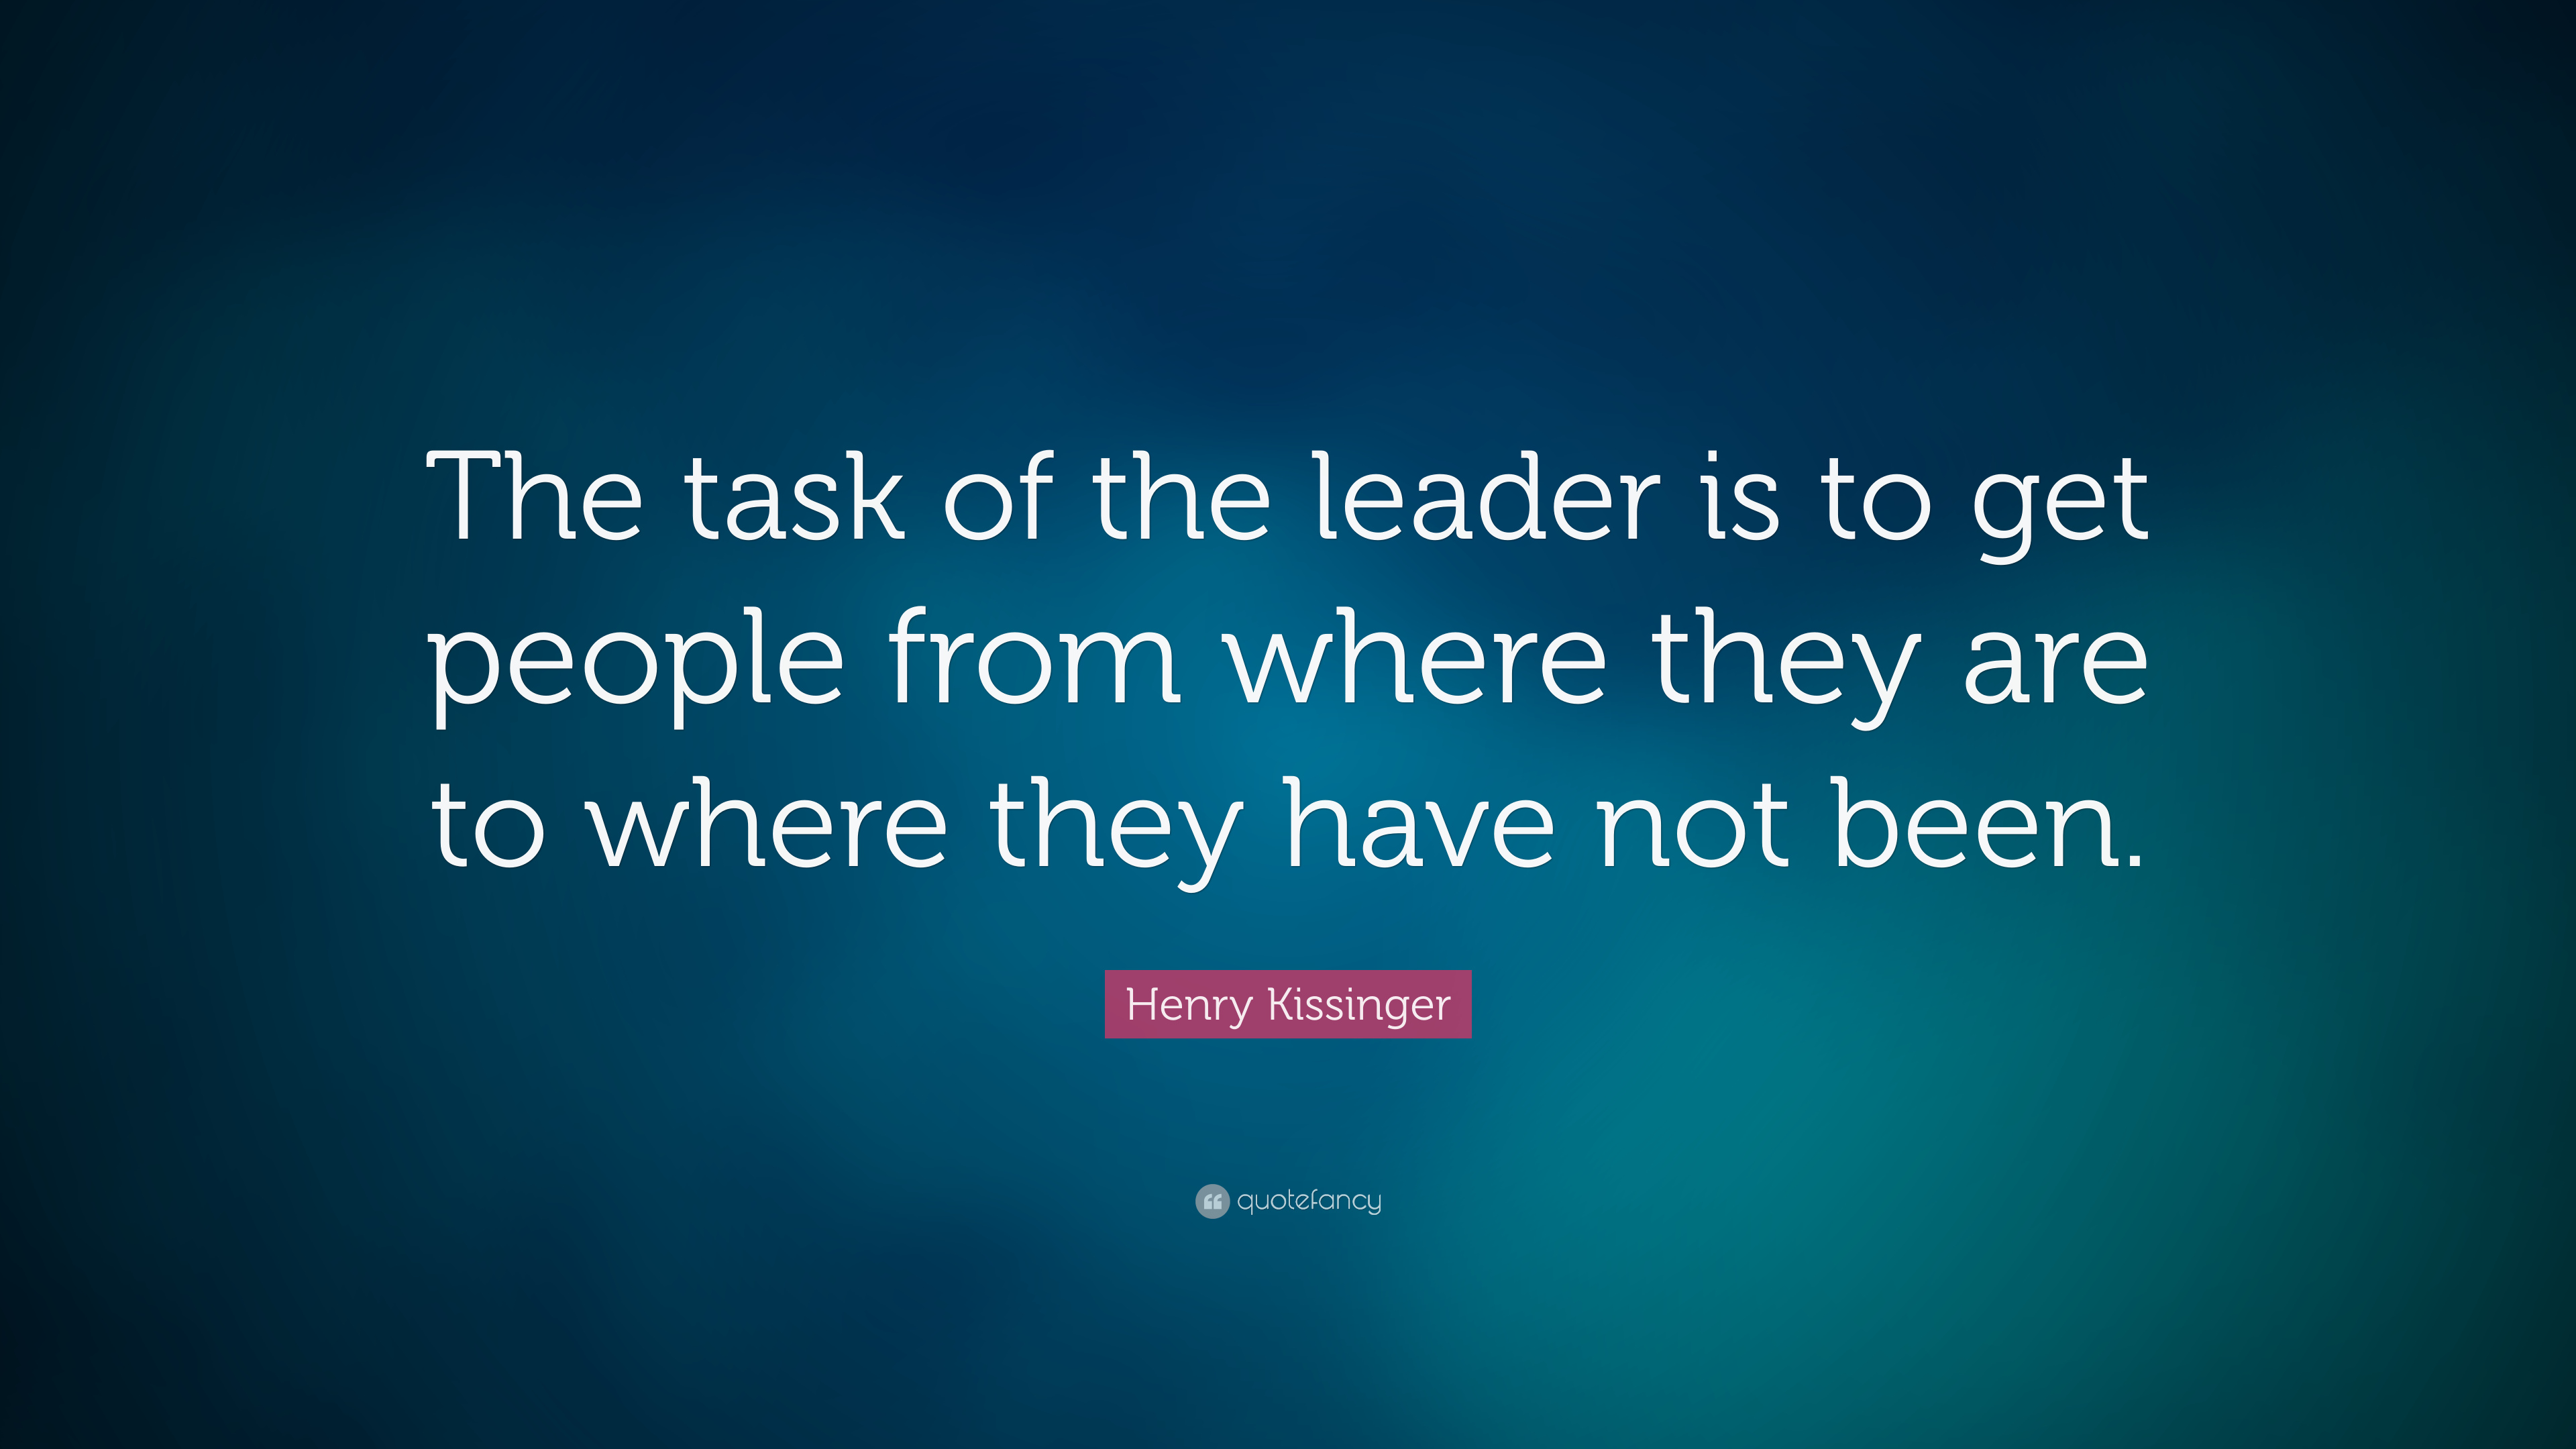 leader leadership and people The 80 best quotes about leadership curated by: michael brandon last updated: 03/6/15 welcome to our growing collection of the best, most inspirational quotes about leadership and what it means to be a great, effective leader real leaders are ordinary people with extraordinary.